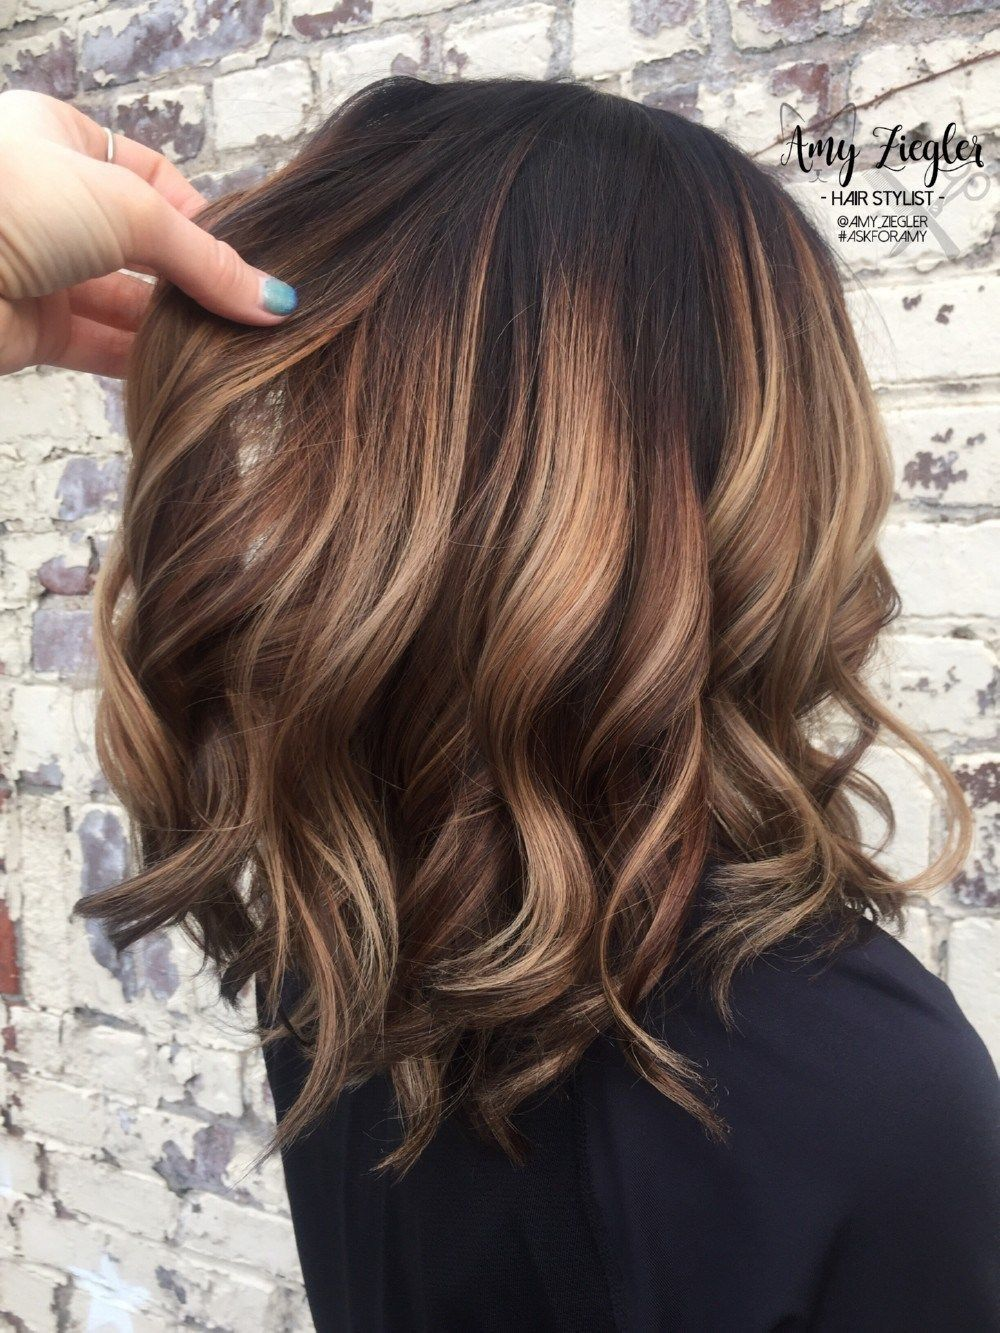 18 Enchanting Newest Hairstyles Ceplukan Balayage Hair Dark Short Hair Balayage Blonde Balayage